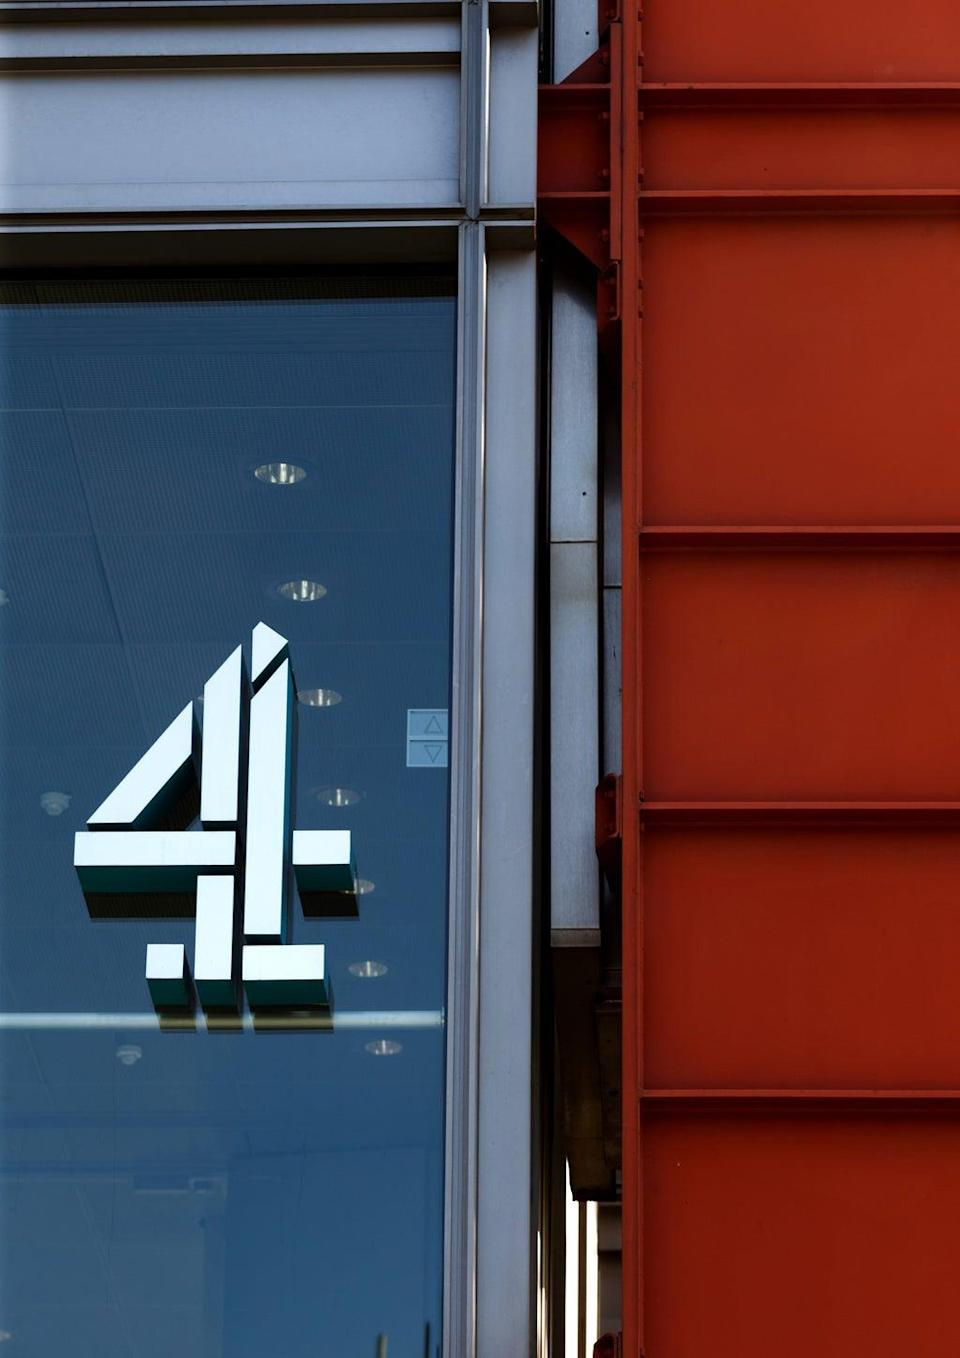 Channel 4 was founded in 1982 to deliver to under-served audiences (John Walton/PA) (PA Archive)